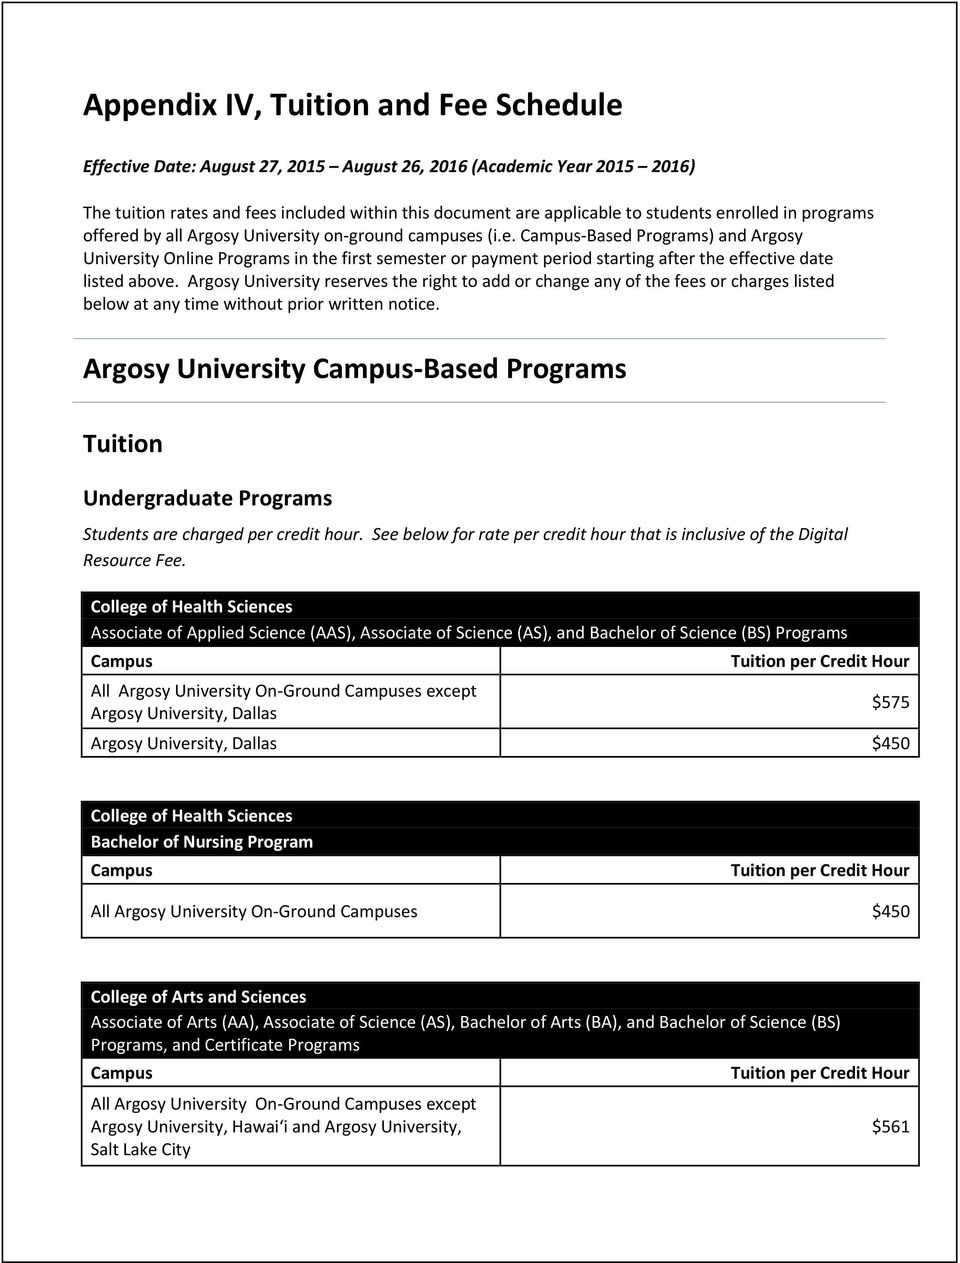 Argosy University reserves the right to add or change any of the fees or charges listed below at any time without prior written notice.